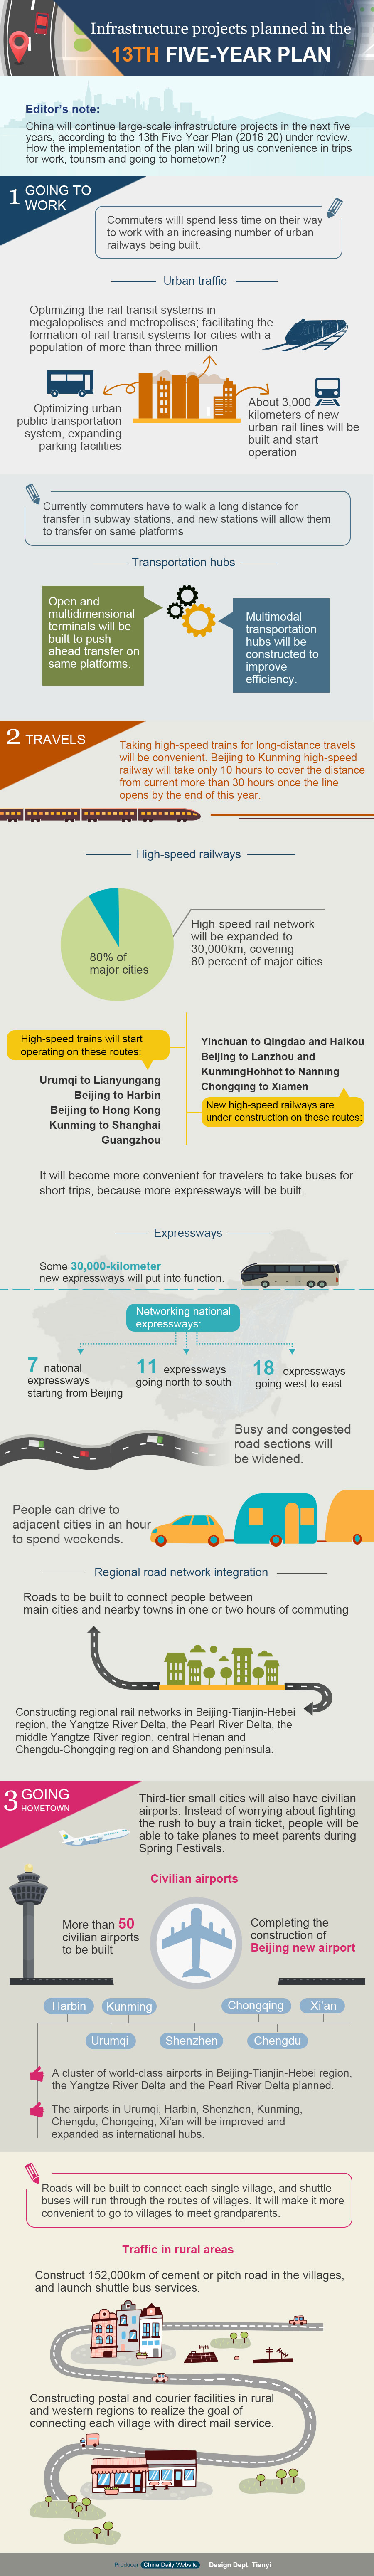 China 13th Five-Year infrastructure plans graphic chinadaily